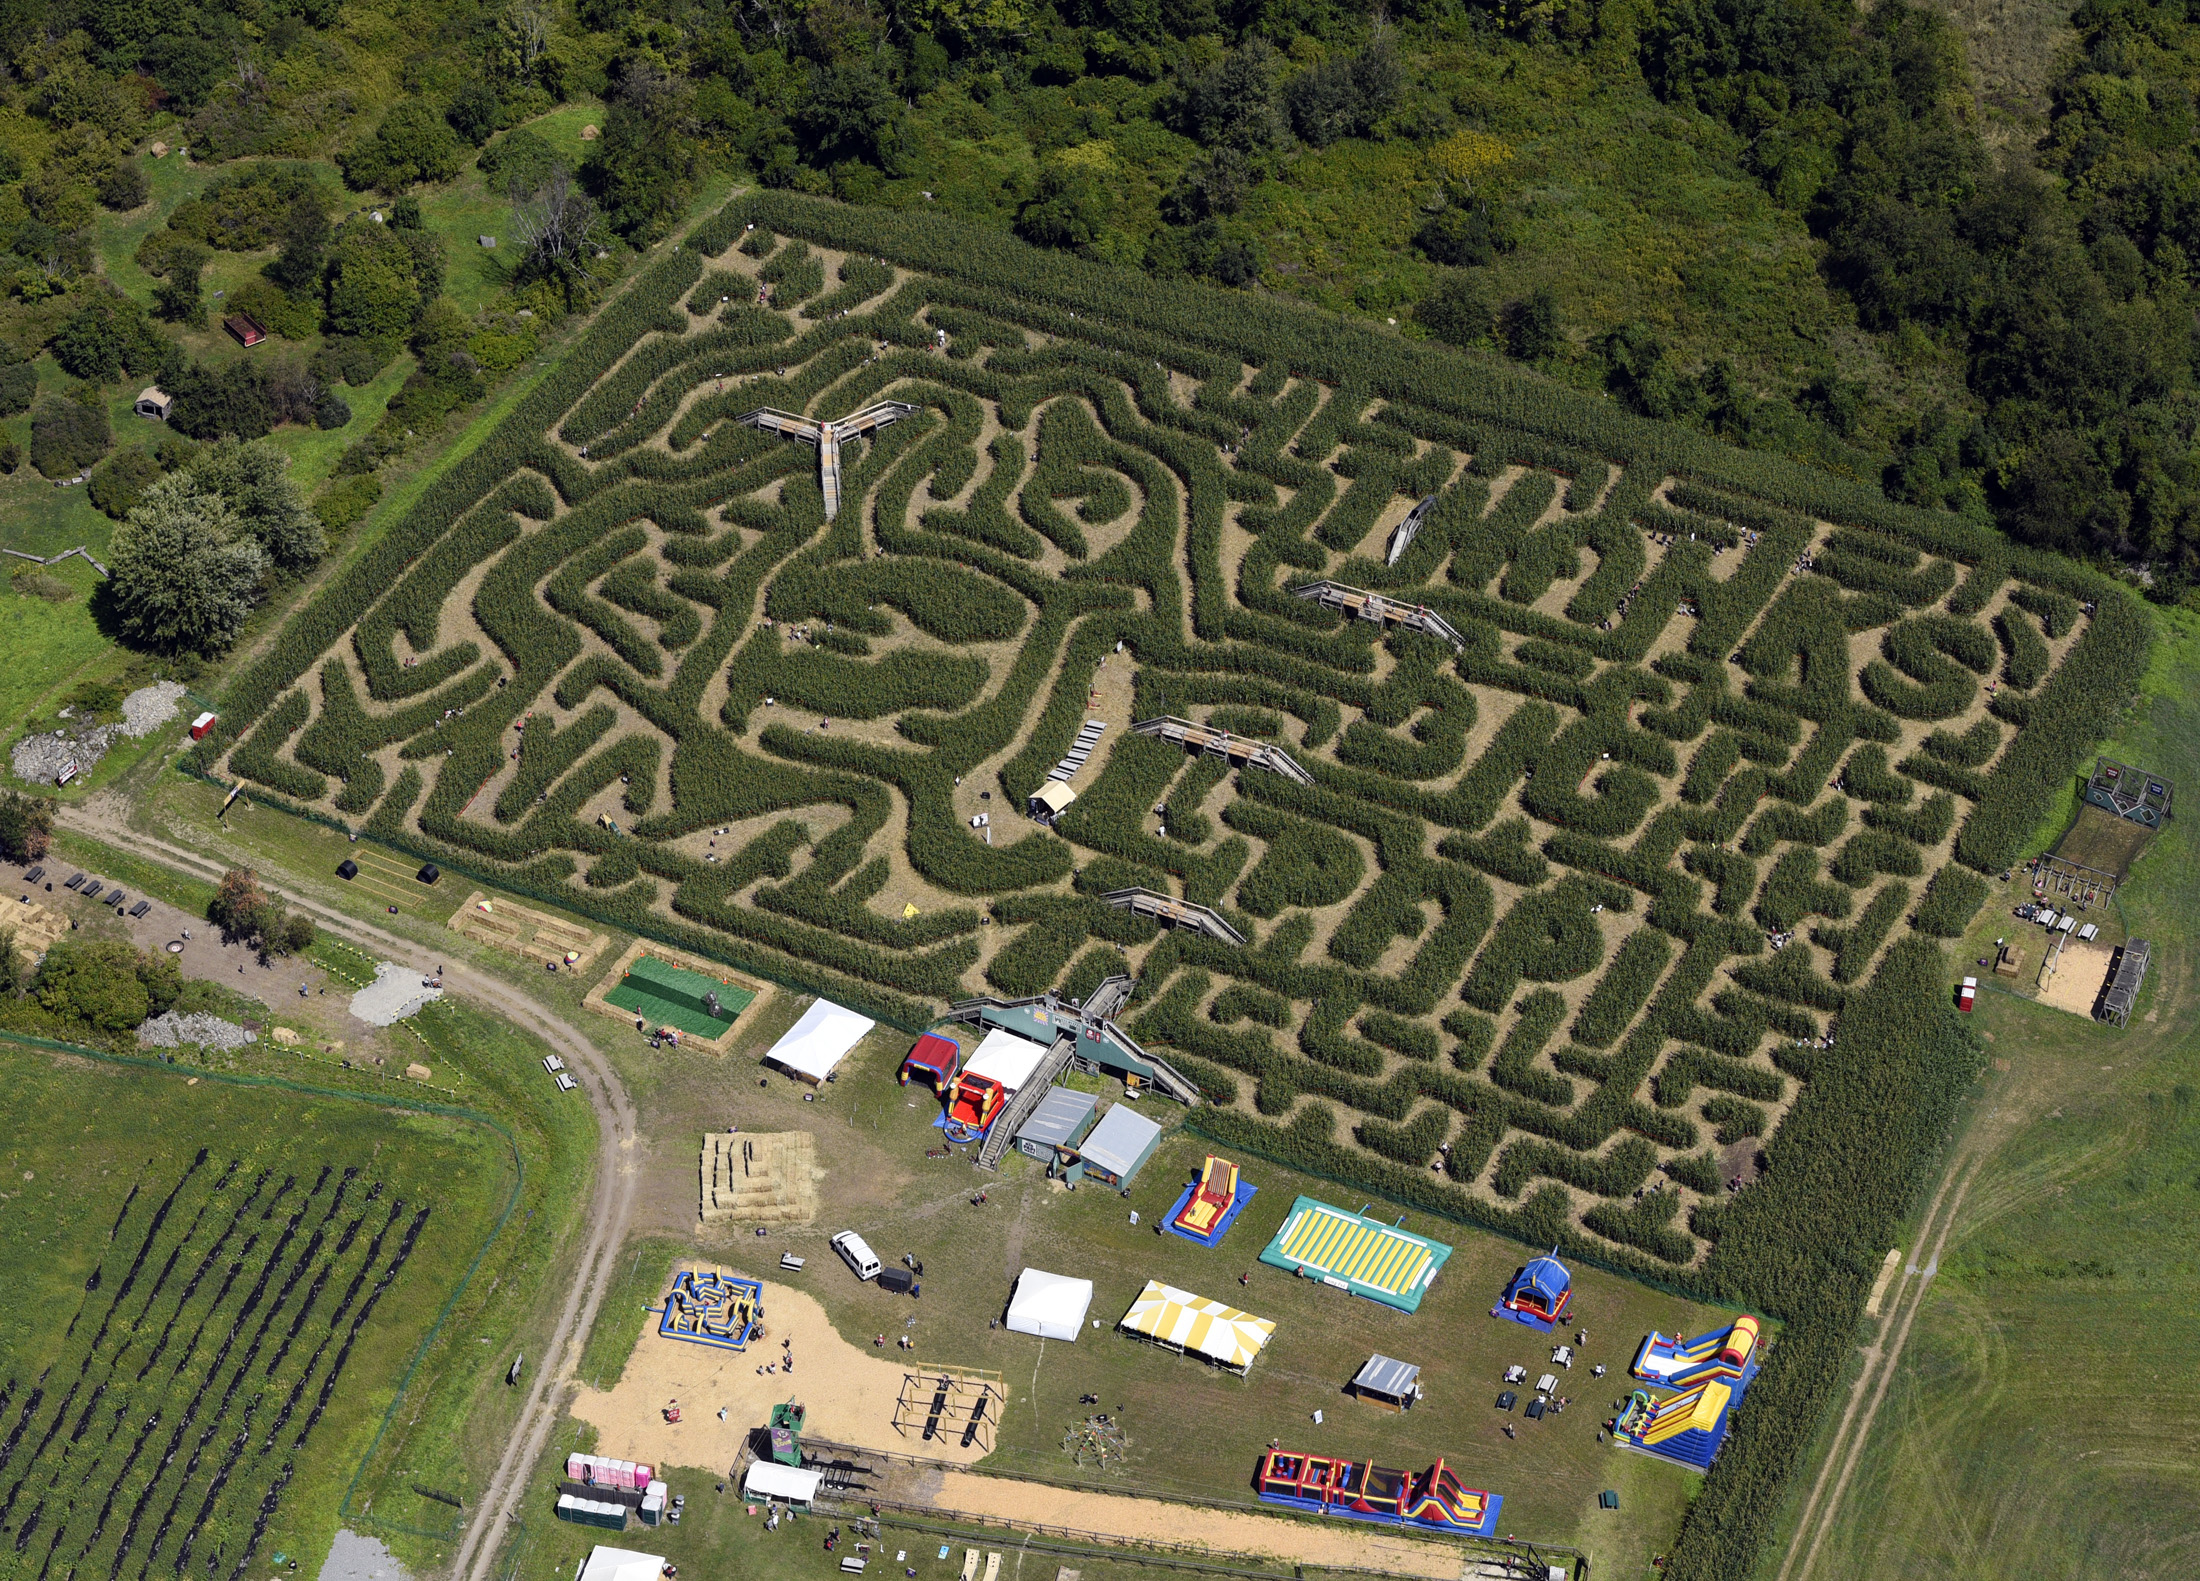 This aerial view shows a corn maze in the likeness ofBoston Red Sox slugger David Ortiz, Tuesday, Aug. 30, 2016, in Sterling, Mass. The 8-acre maze was created by Davis Mega Maze and features a cornstalk rendering of Ortiz's trademark home run pose of poi